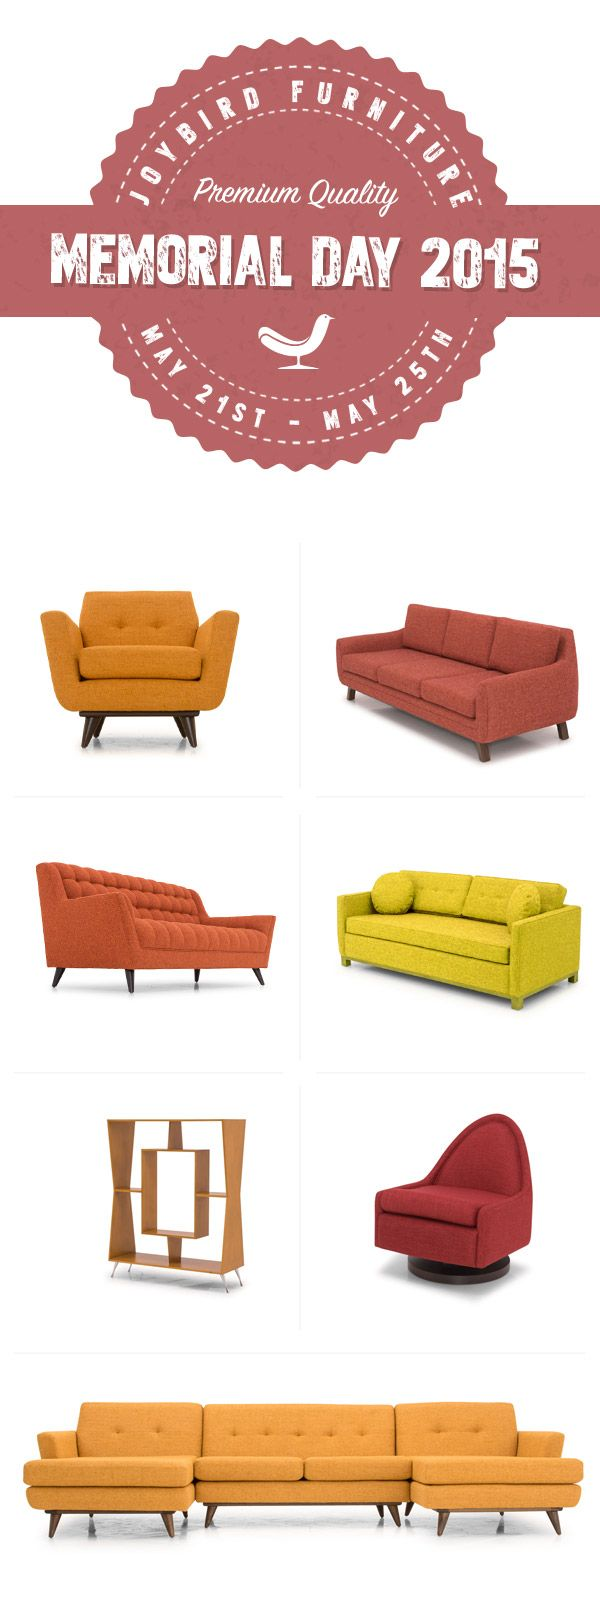 Joybird a Mid Century Modern Online Furniture Company based out of L A   Design at your. Best 20  Online furniture ideas on Pinterest   Vintage cross